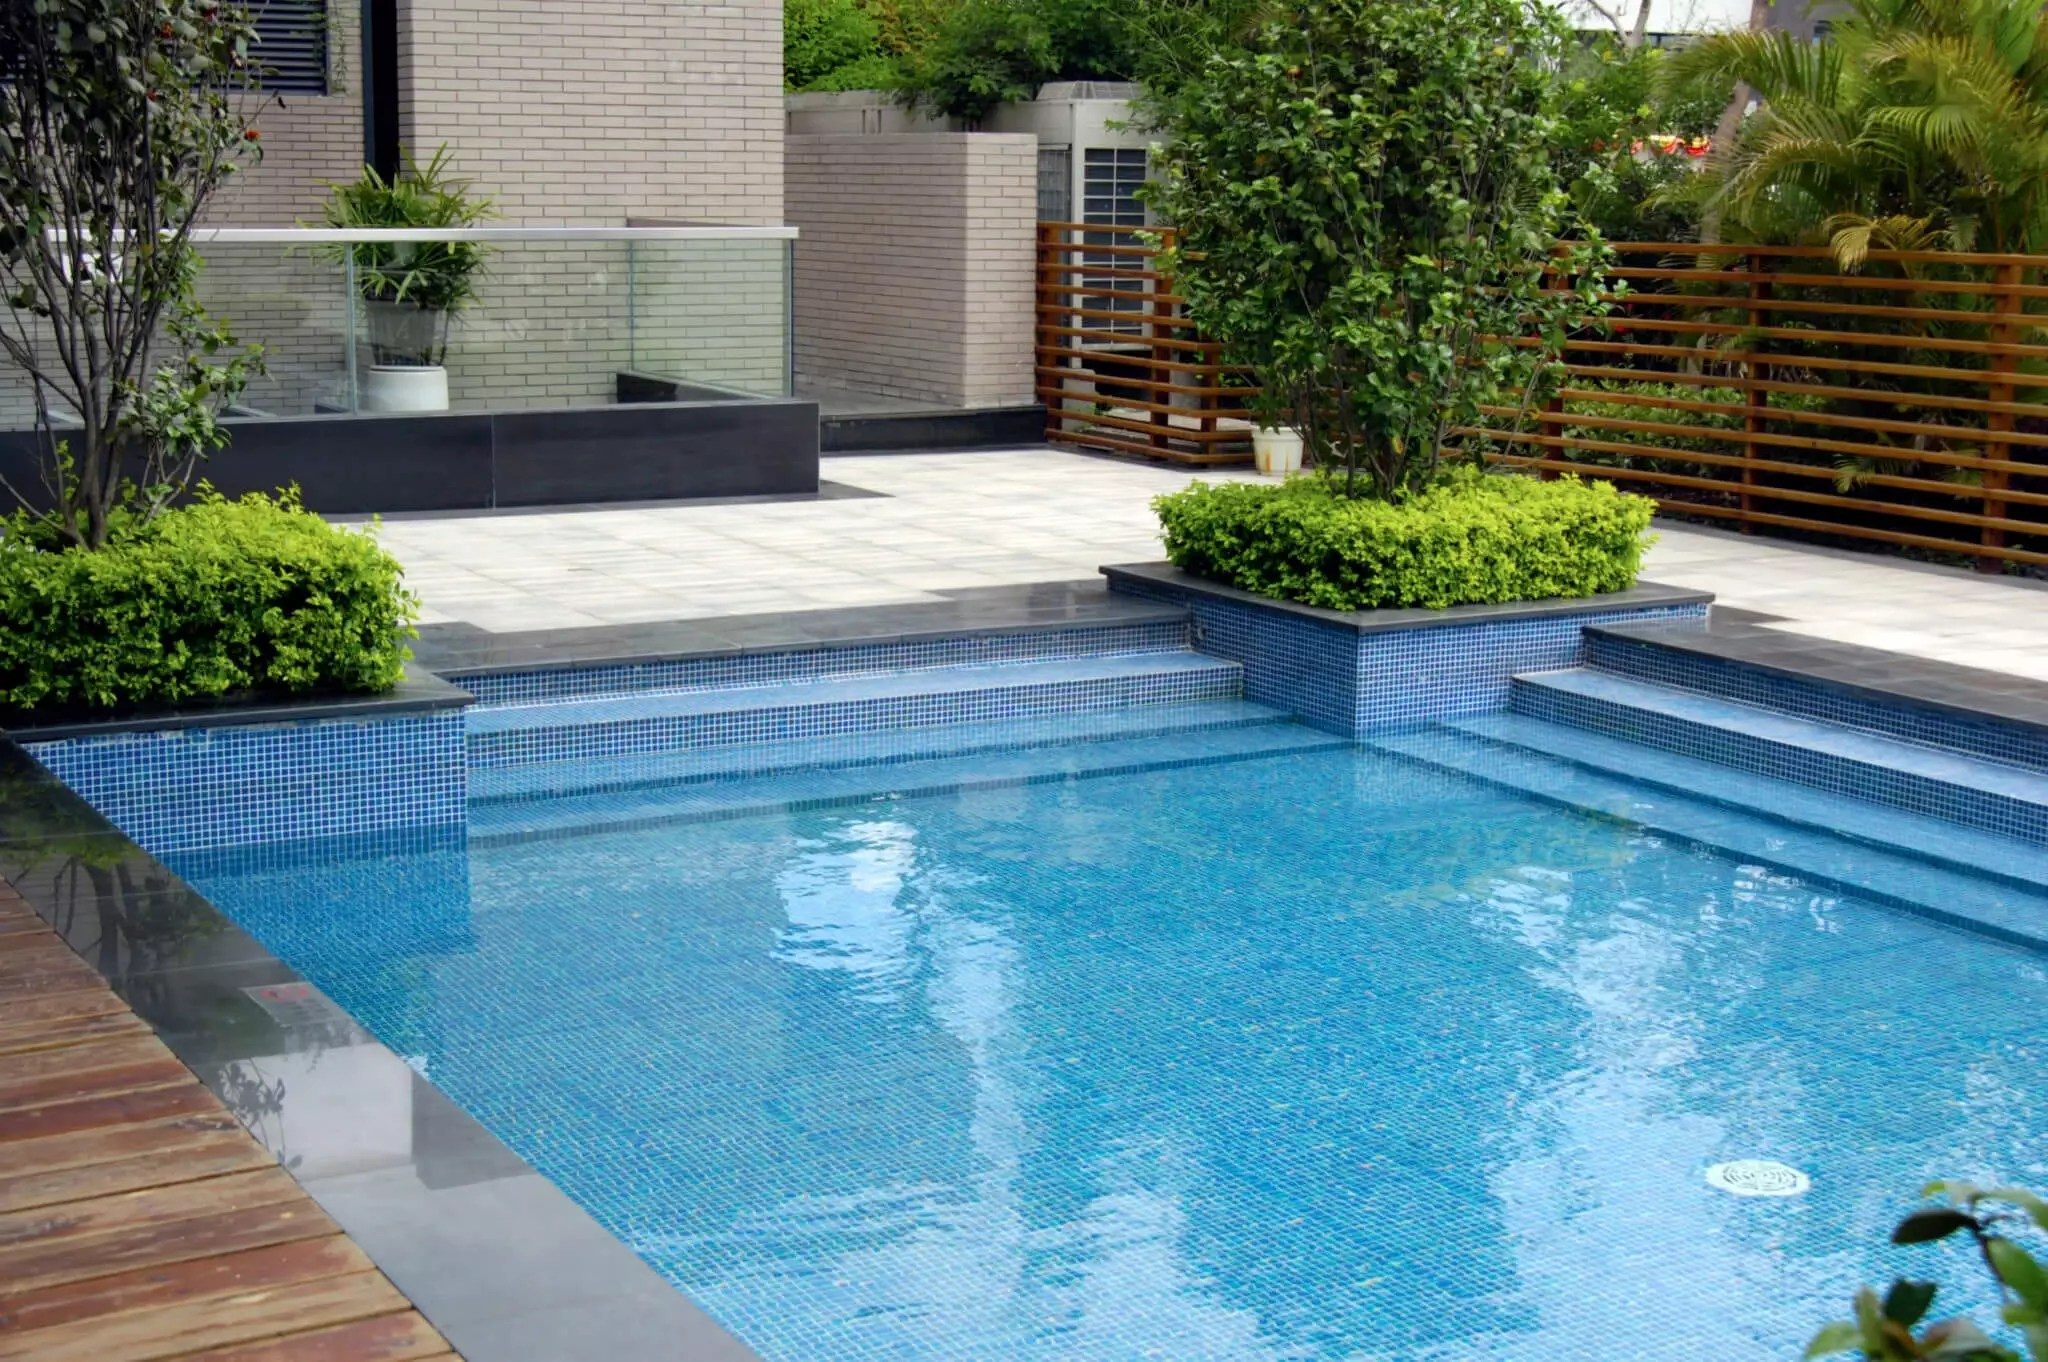 Poolabdeckung Begehbar Rund Pool Industry Trends That Are Here To Stay